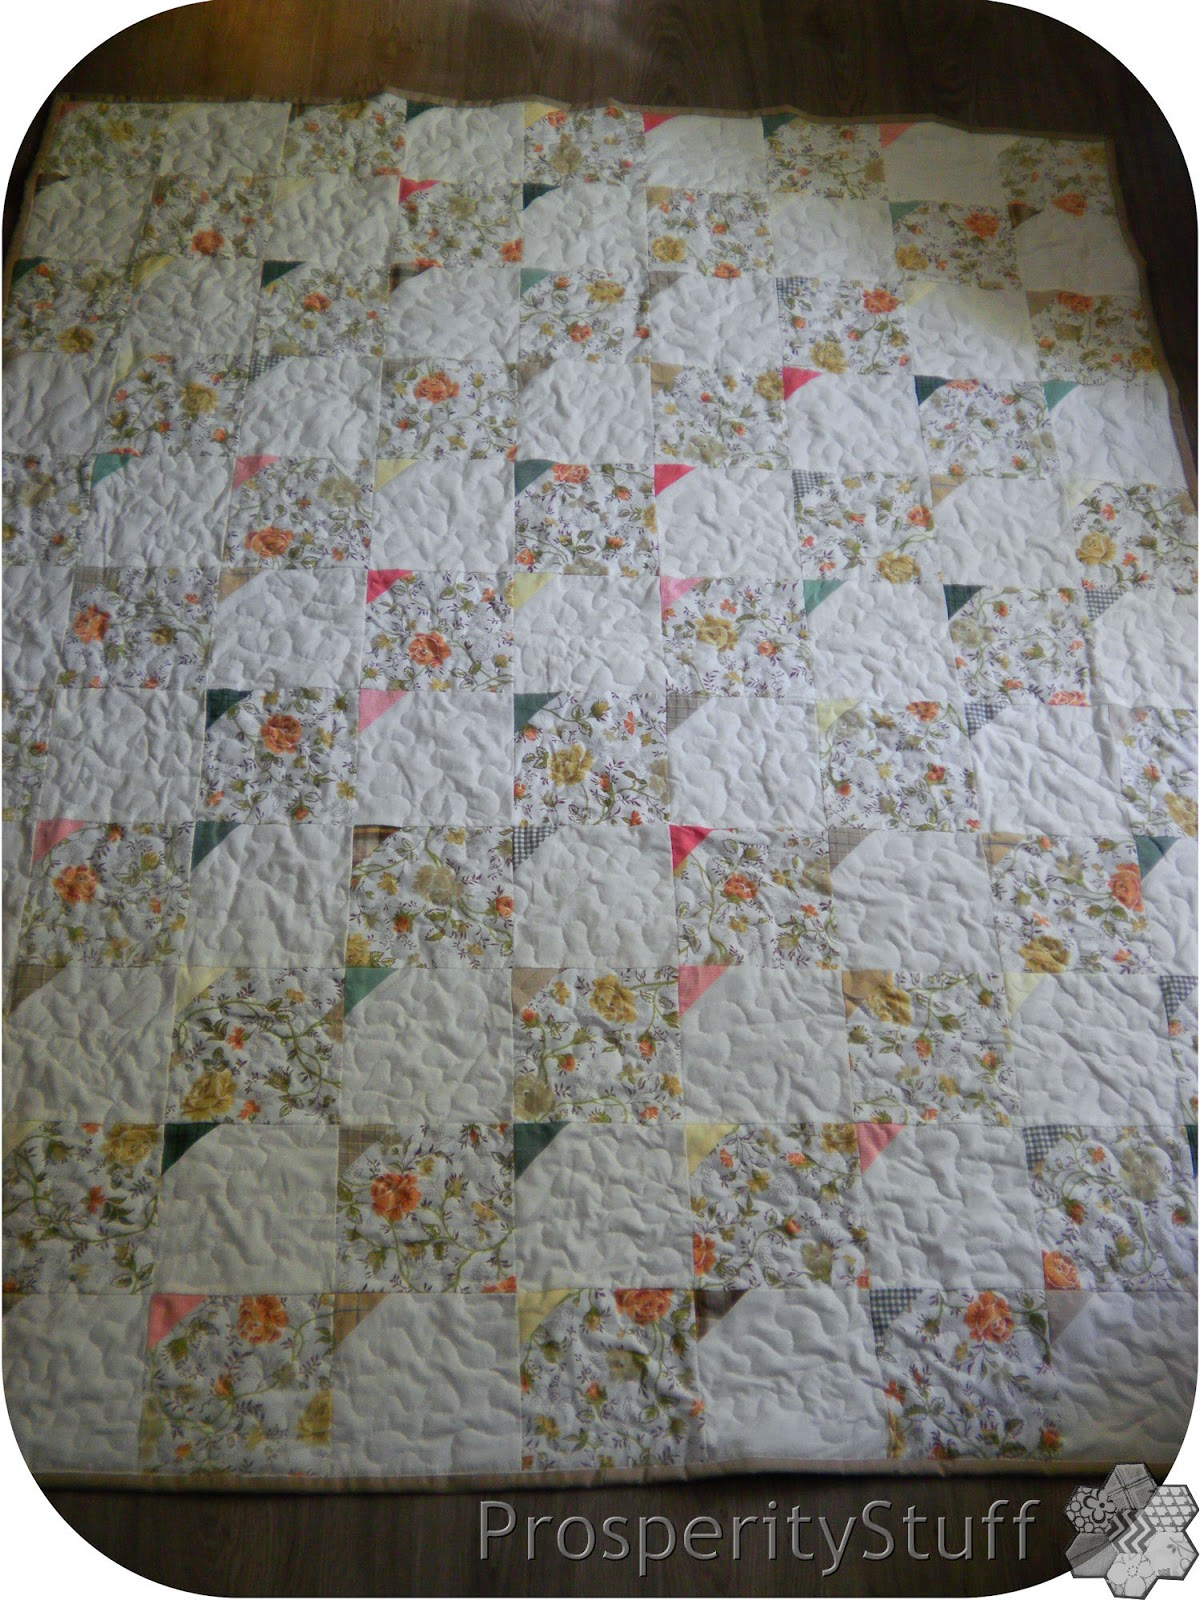 Prosperitystuff Quilts Vintage Sheets In A Quilt